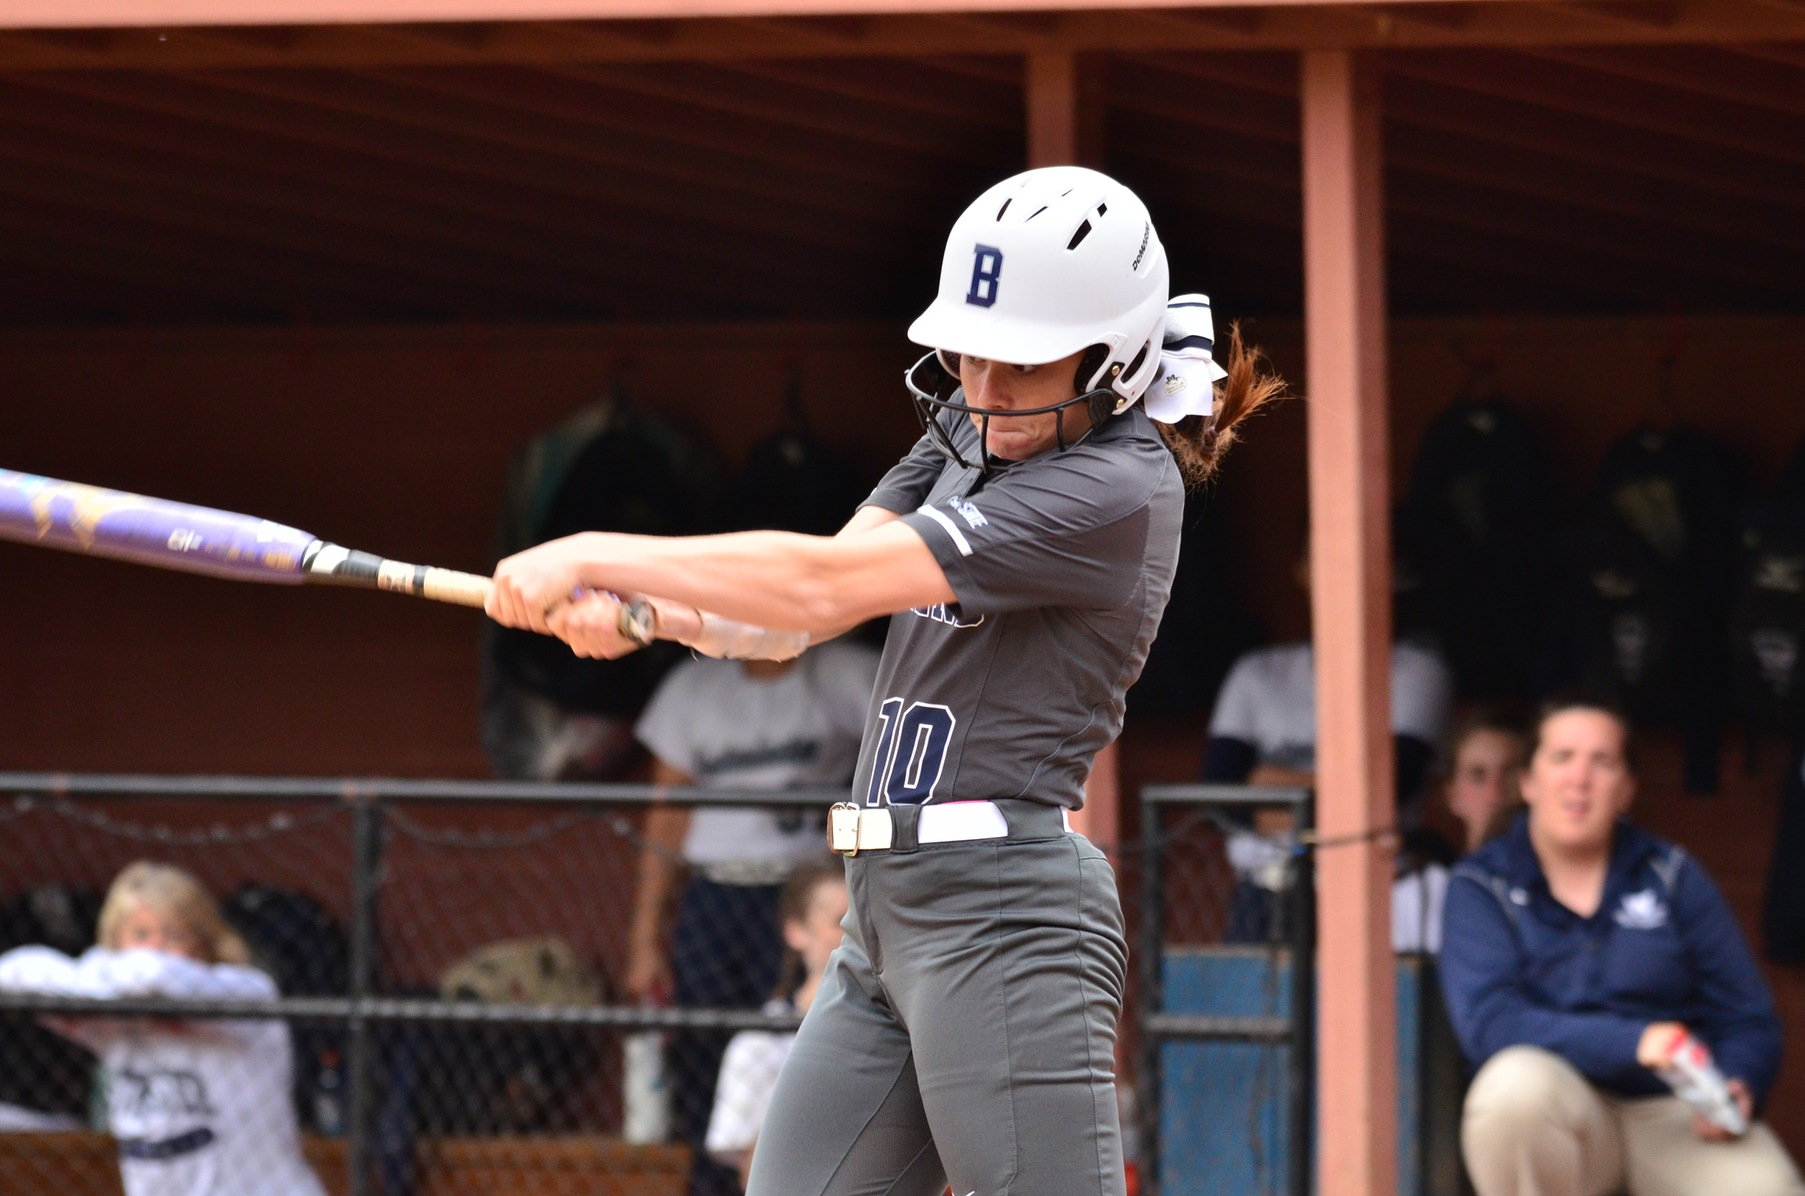 Lions Split with Carnegie Mellon; Hauser Hits Three-Run Homer